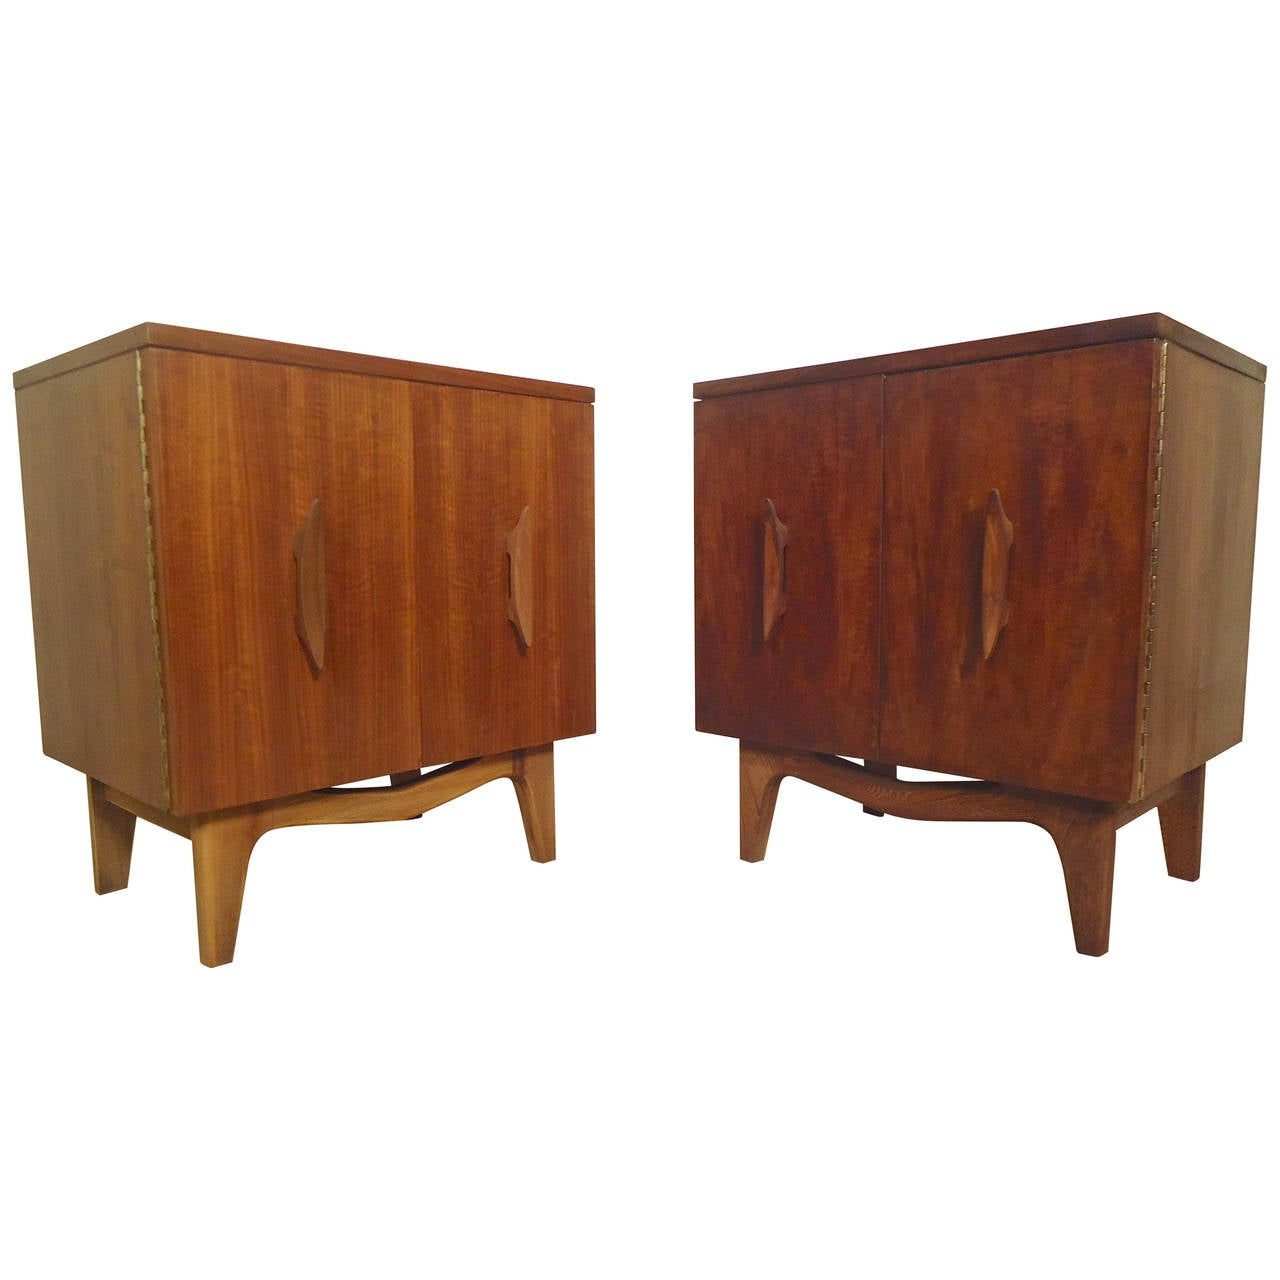 Matching Midcentury Nightstands With Sculpted Detail At